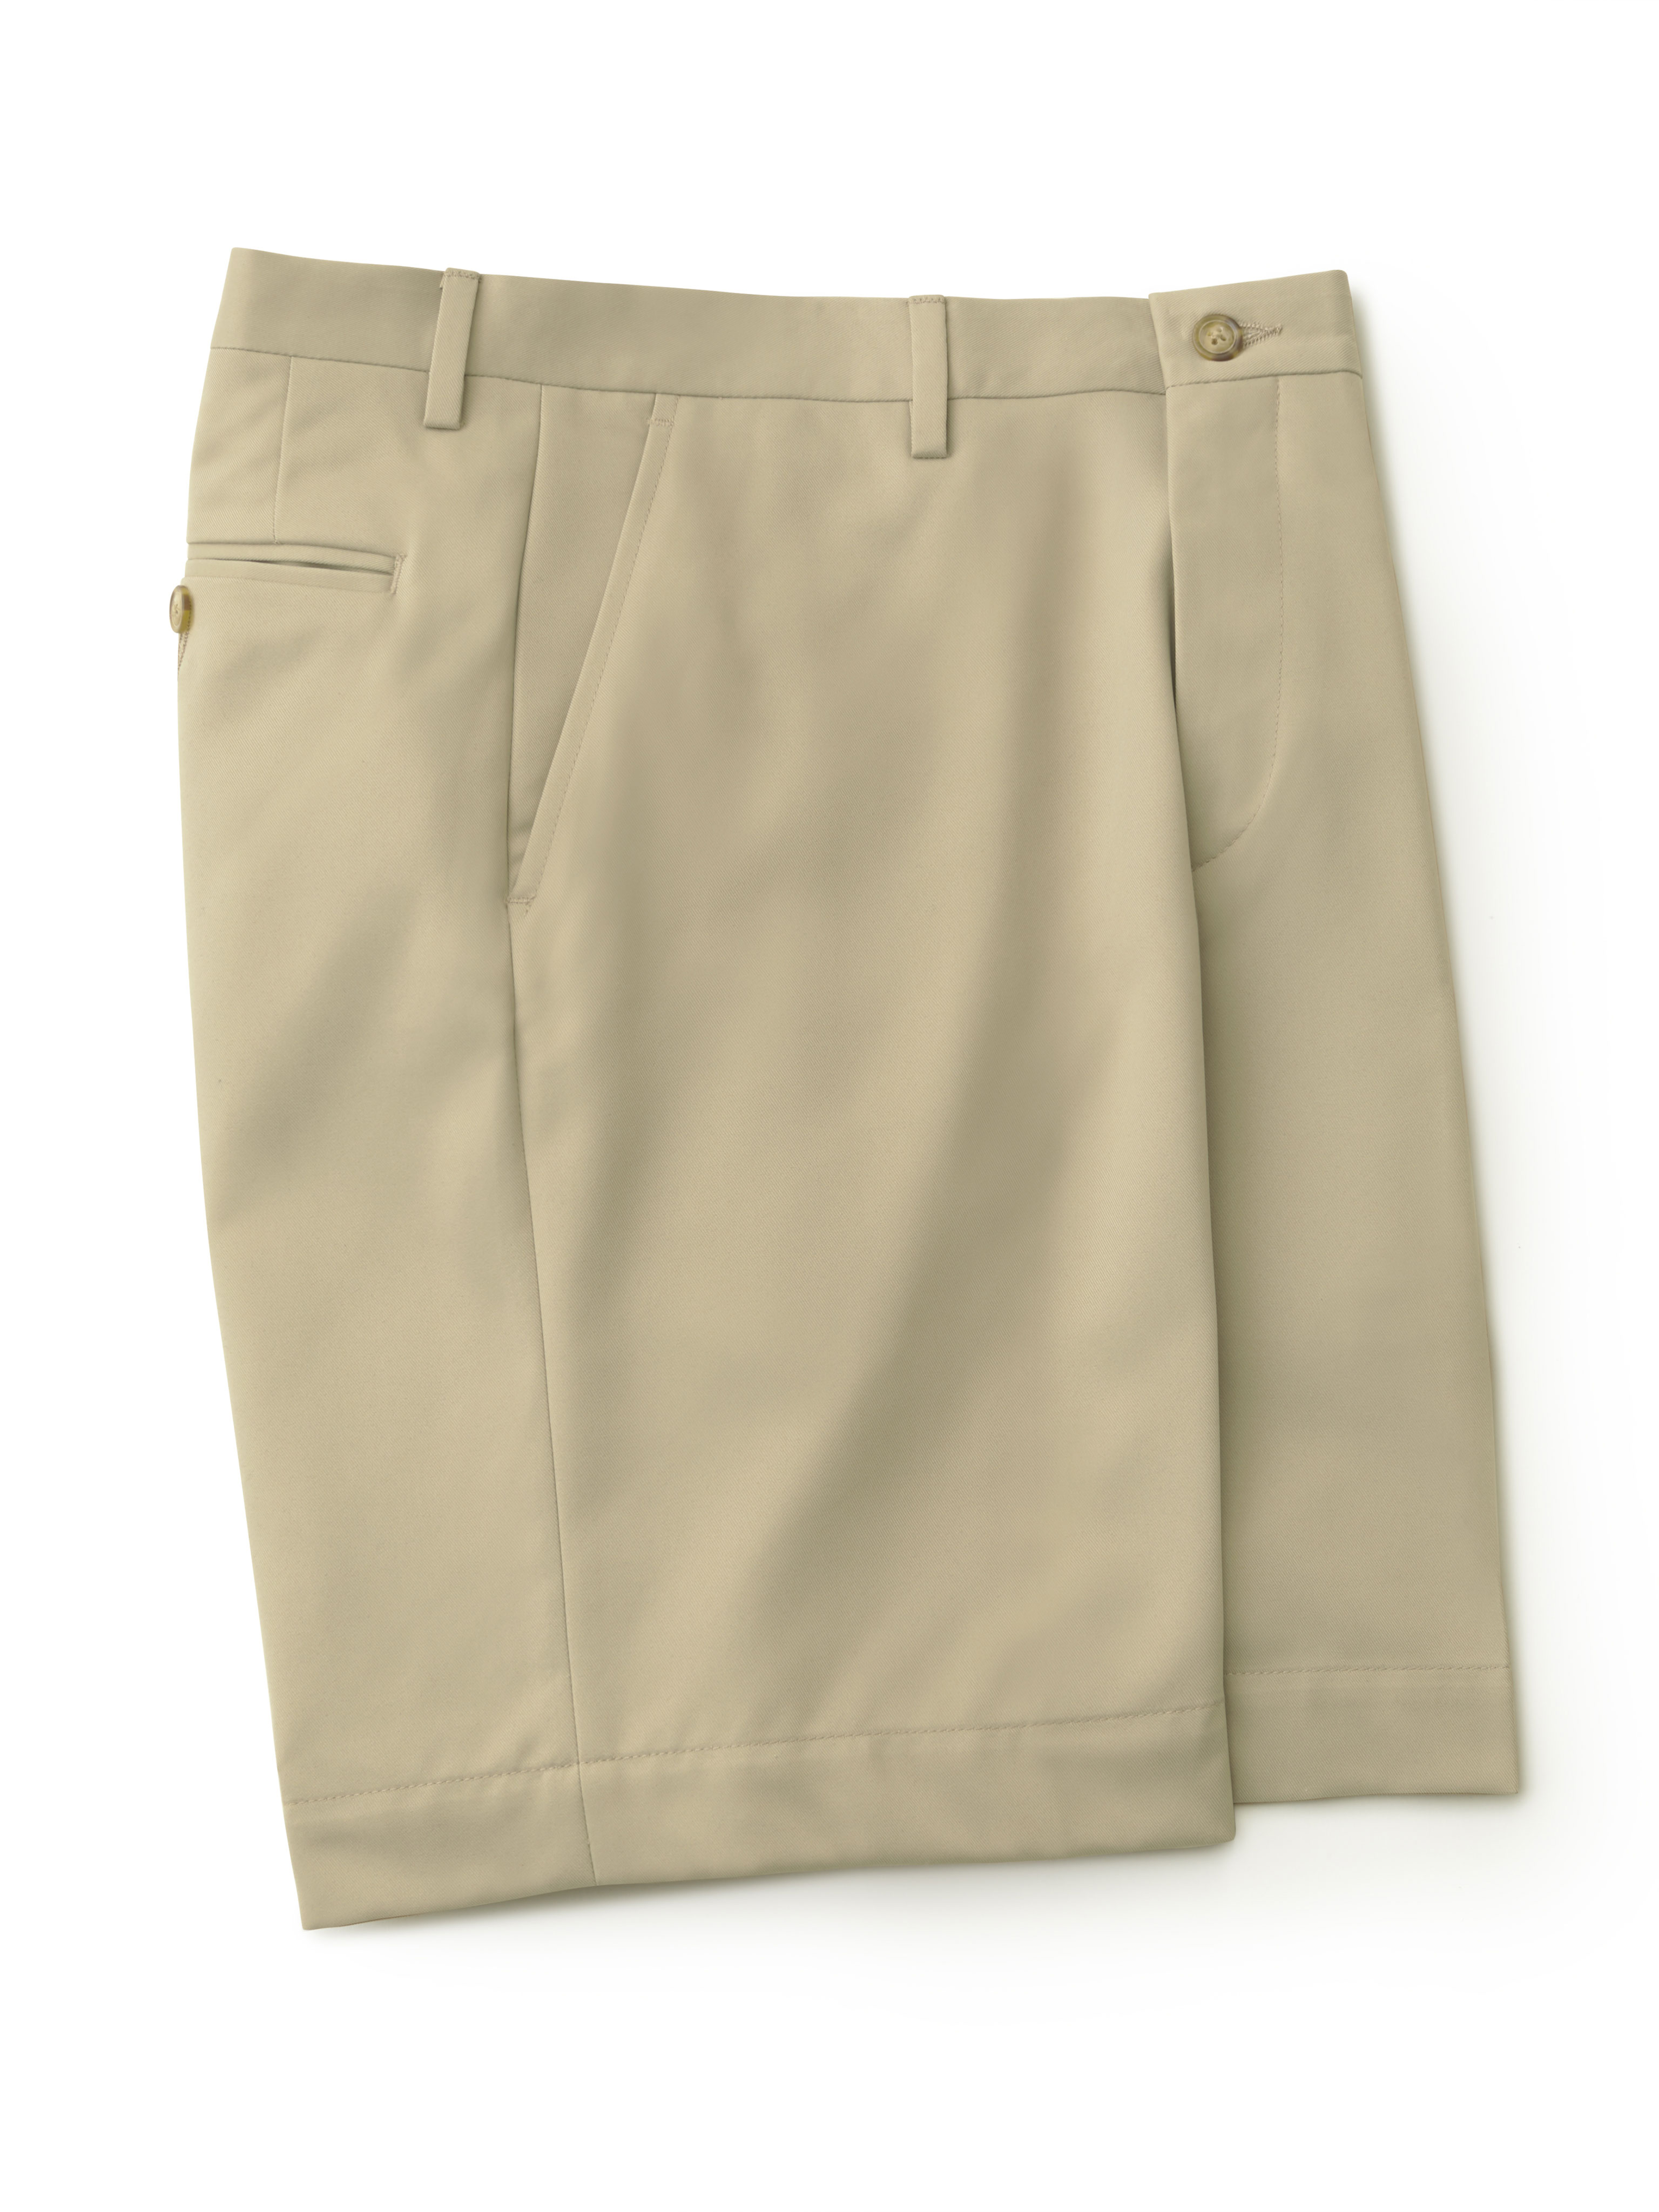 Chino Shorts by Tom James